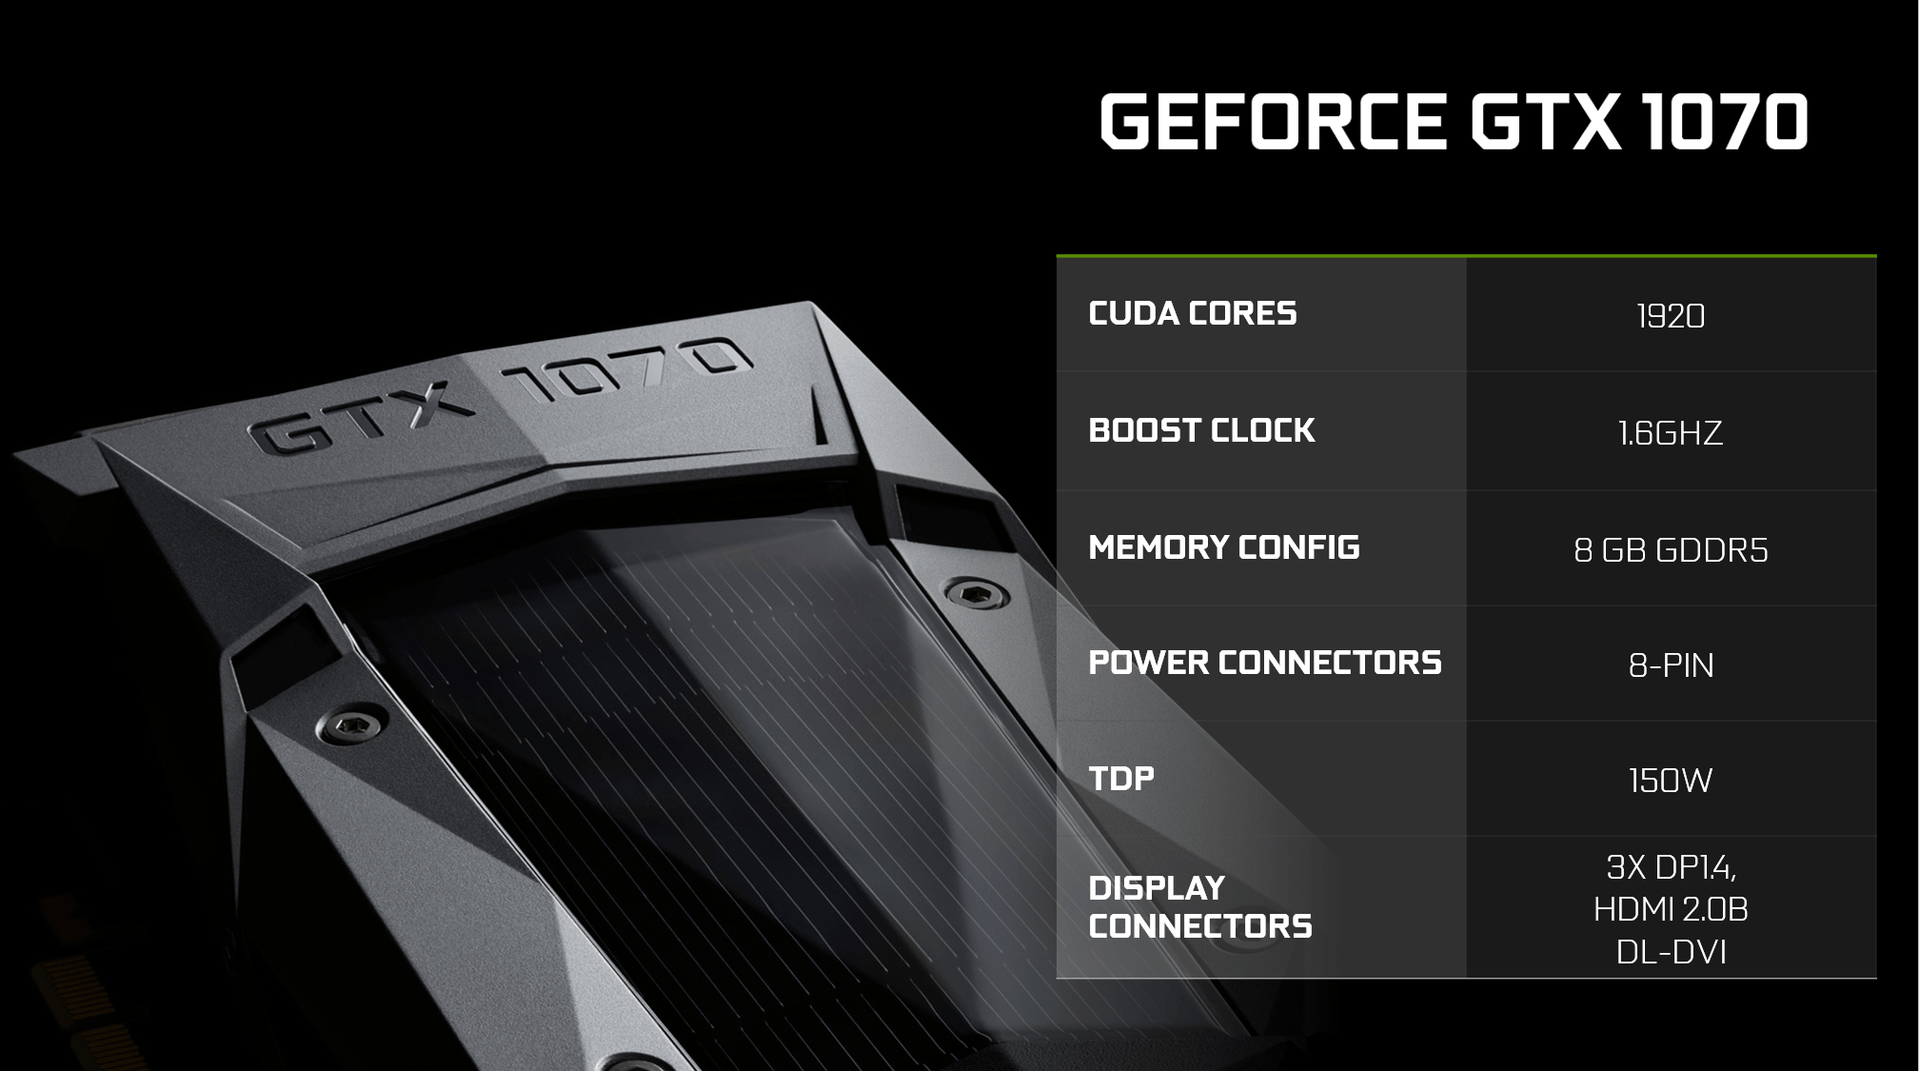 Nvidia GTX 1070 specifications detailed